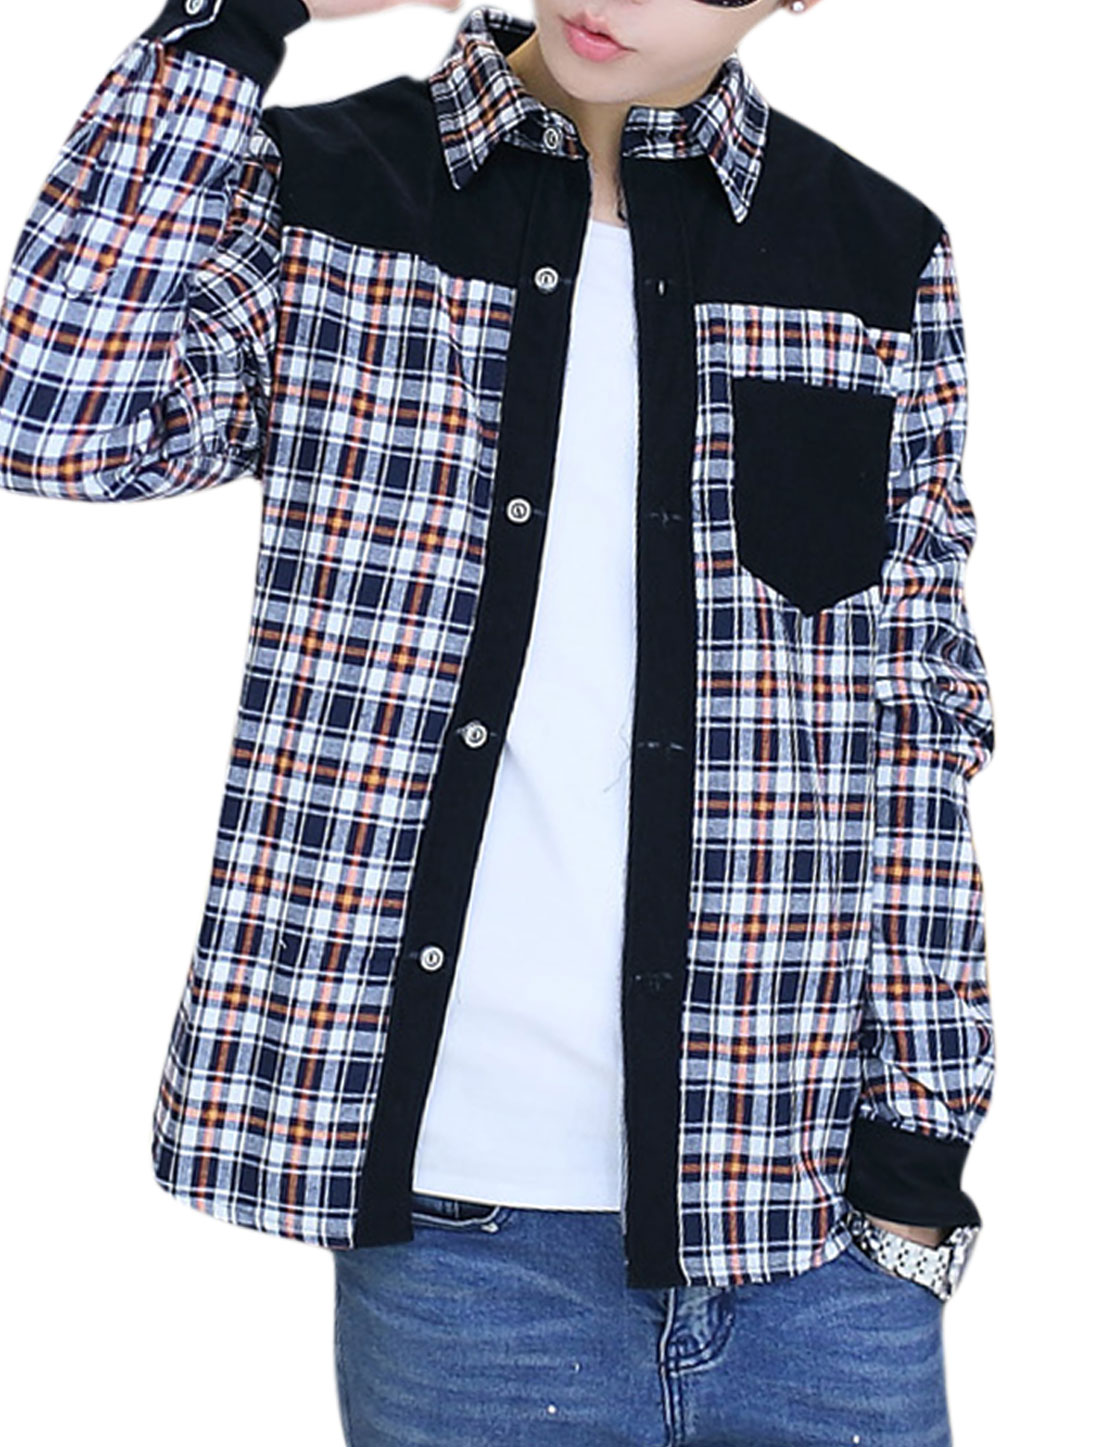 Men Checkered Pattern Contrast Shoulder Fleece Lining Shirt Orange White M